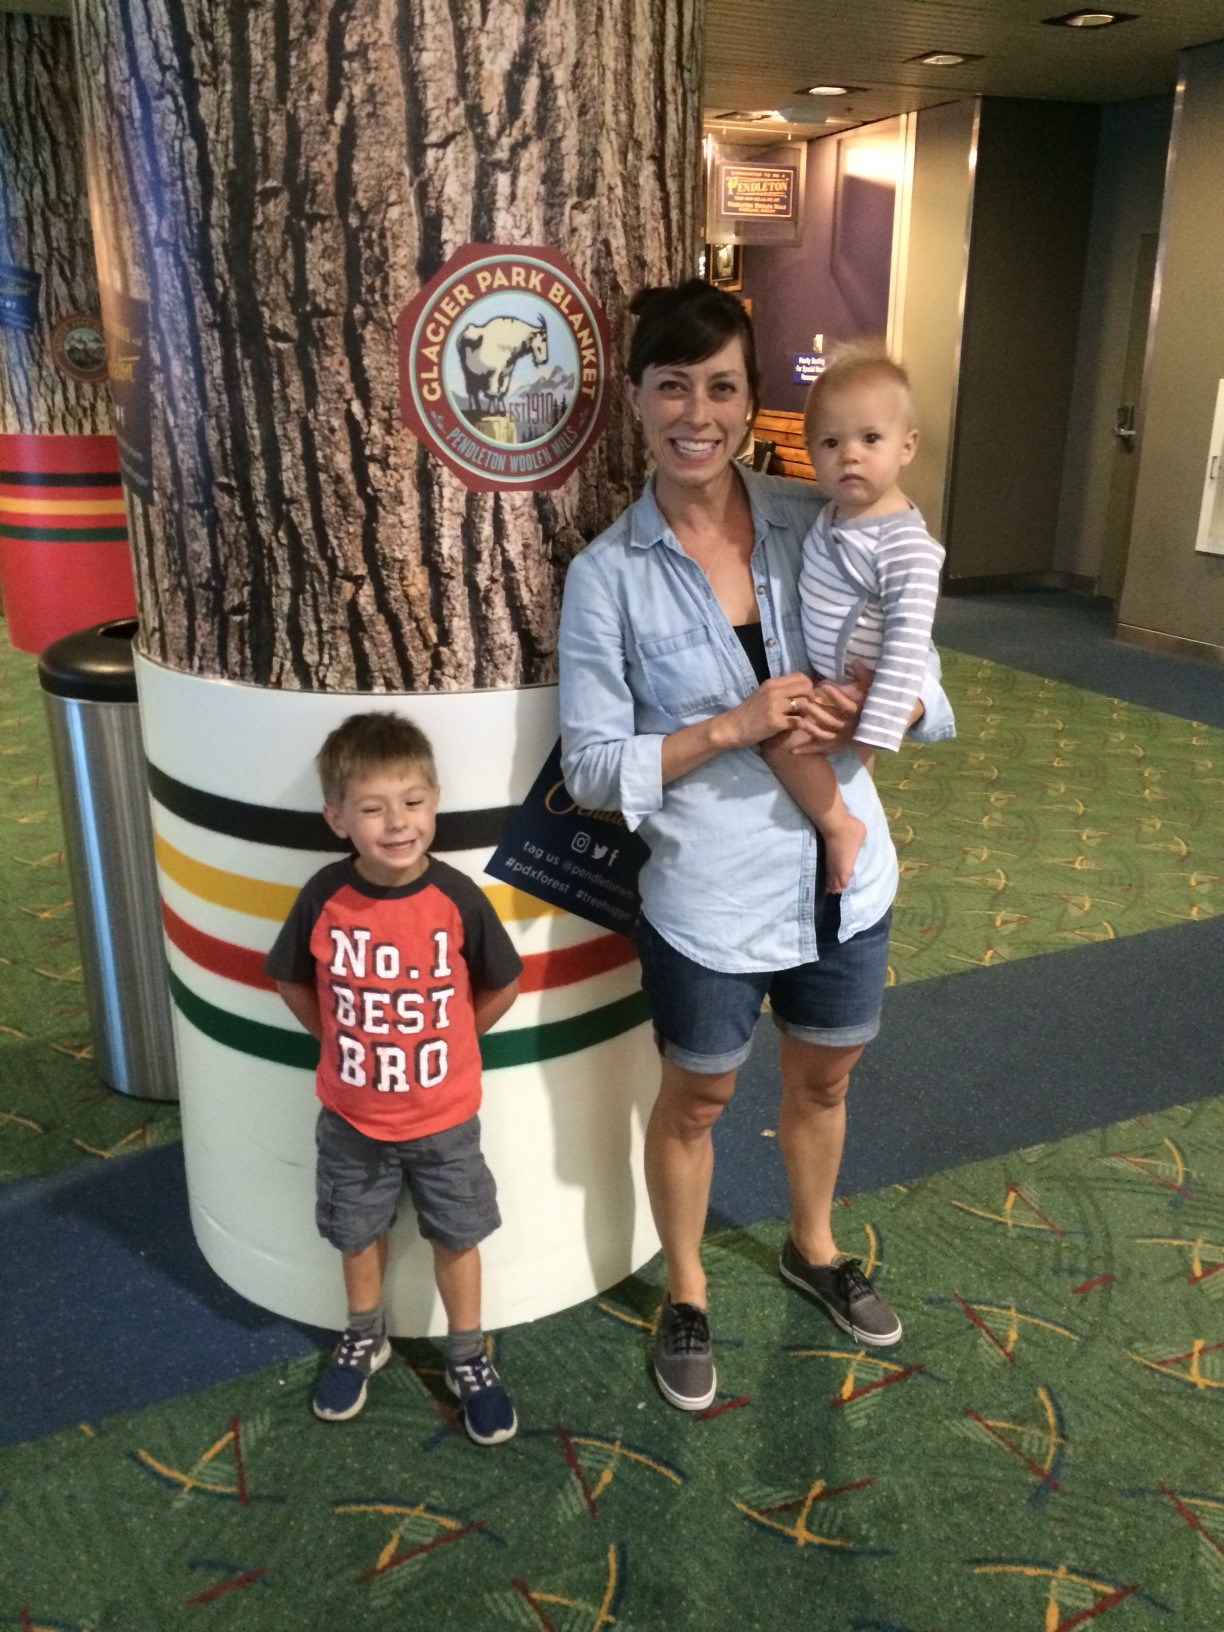 Another entry - mom and two kids by a column